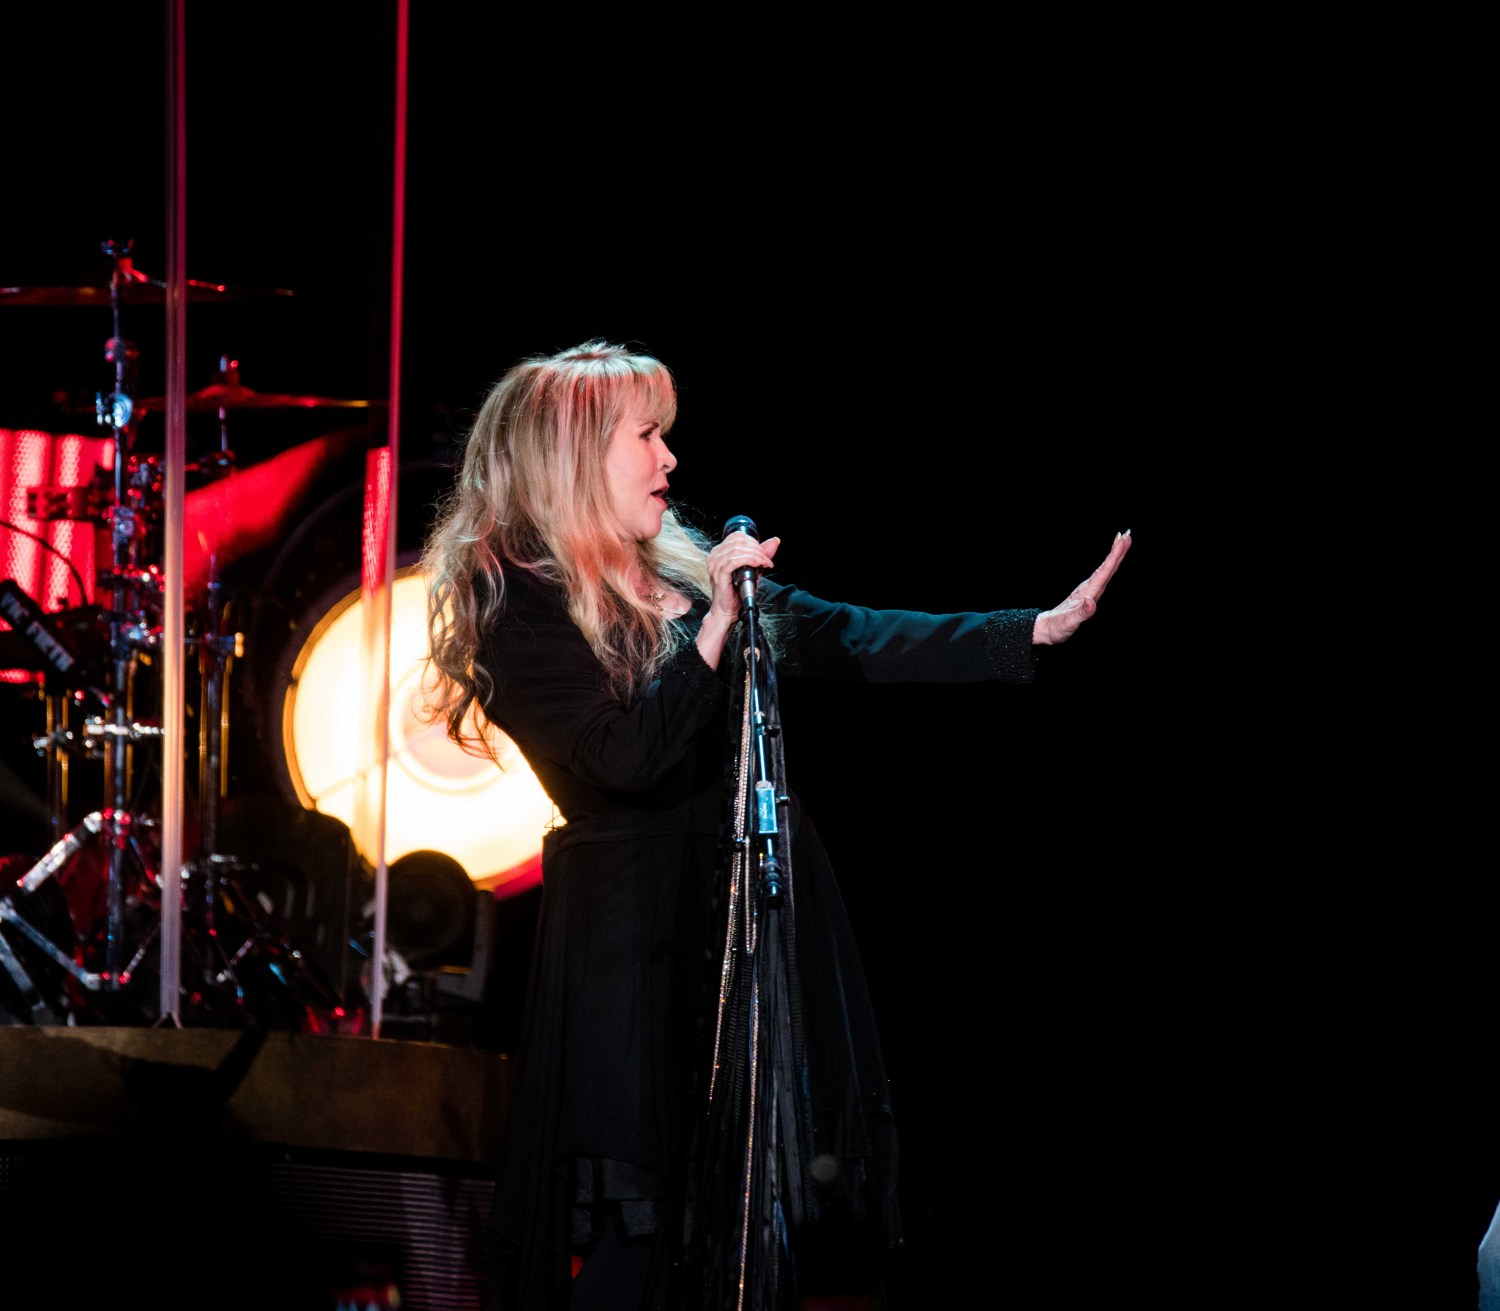 REVIEW – STEVIE NICKS TWIRLS 24-KARATS OF GOLD DUST ON DENVER